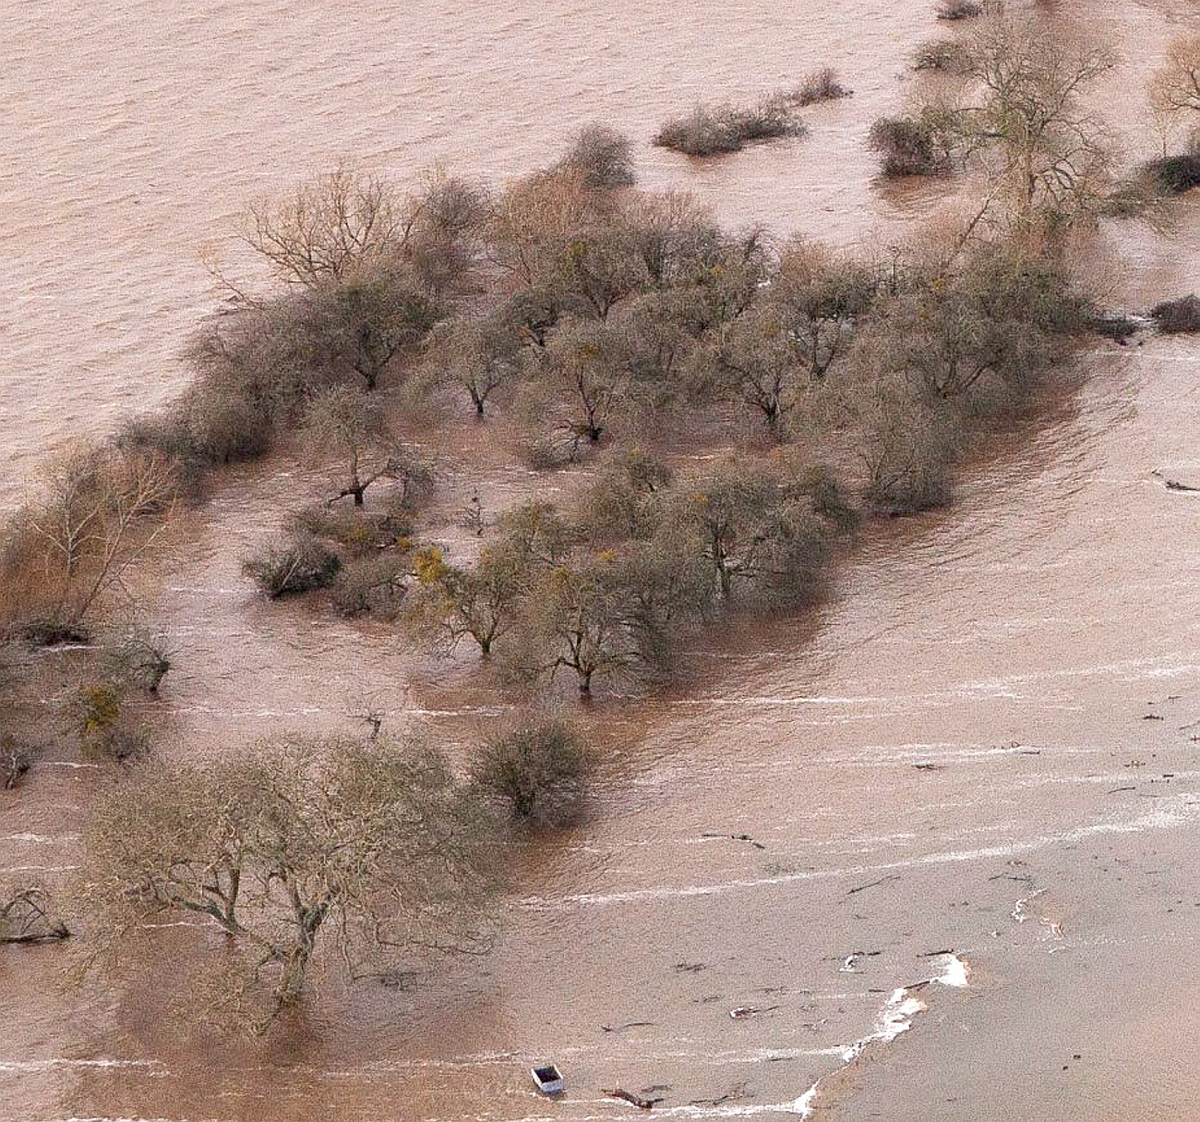 A small orchard is swamped by floodwater. Photo: Adam Gray/SWNS